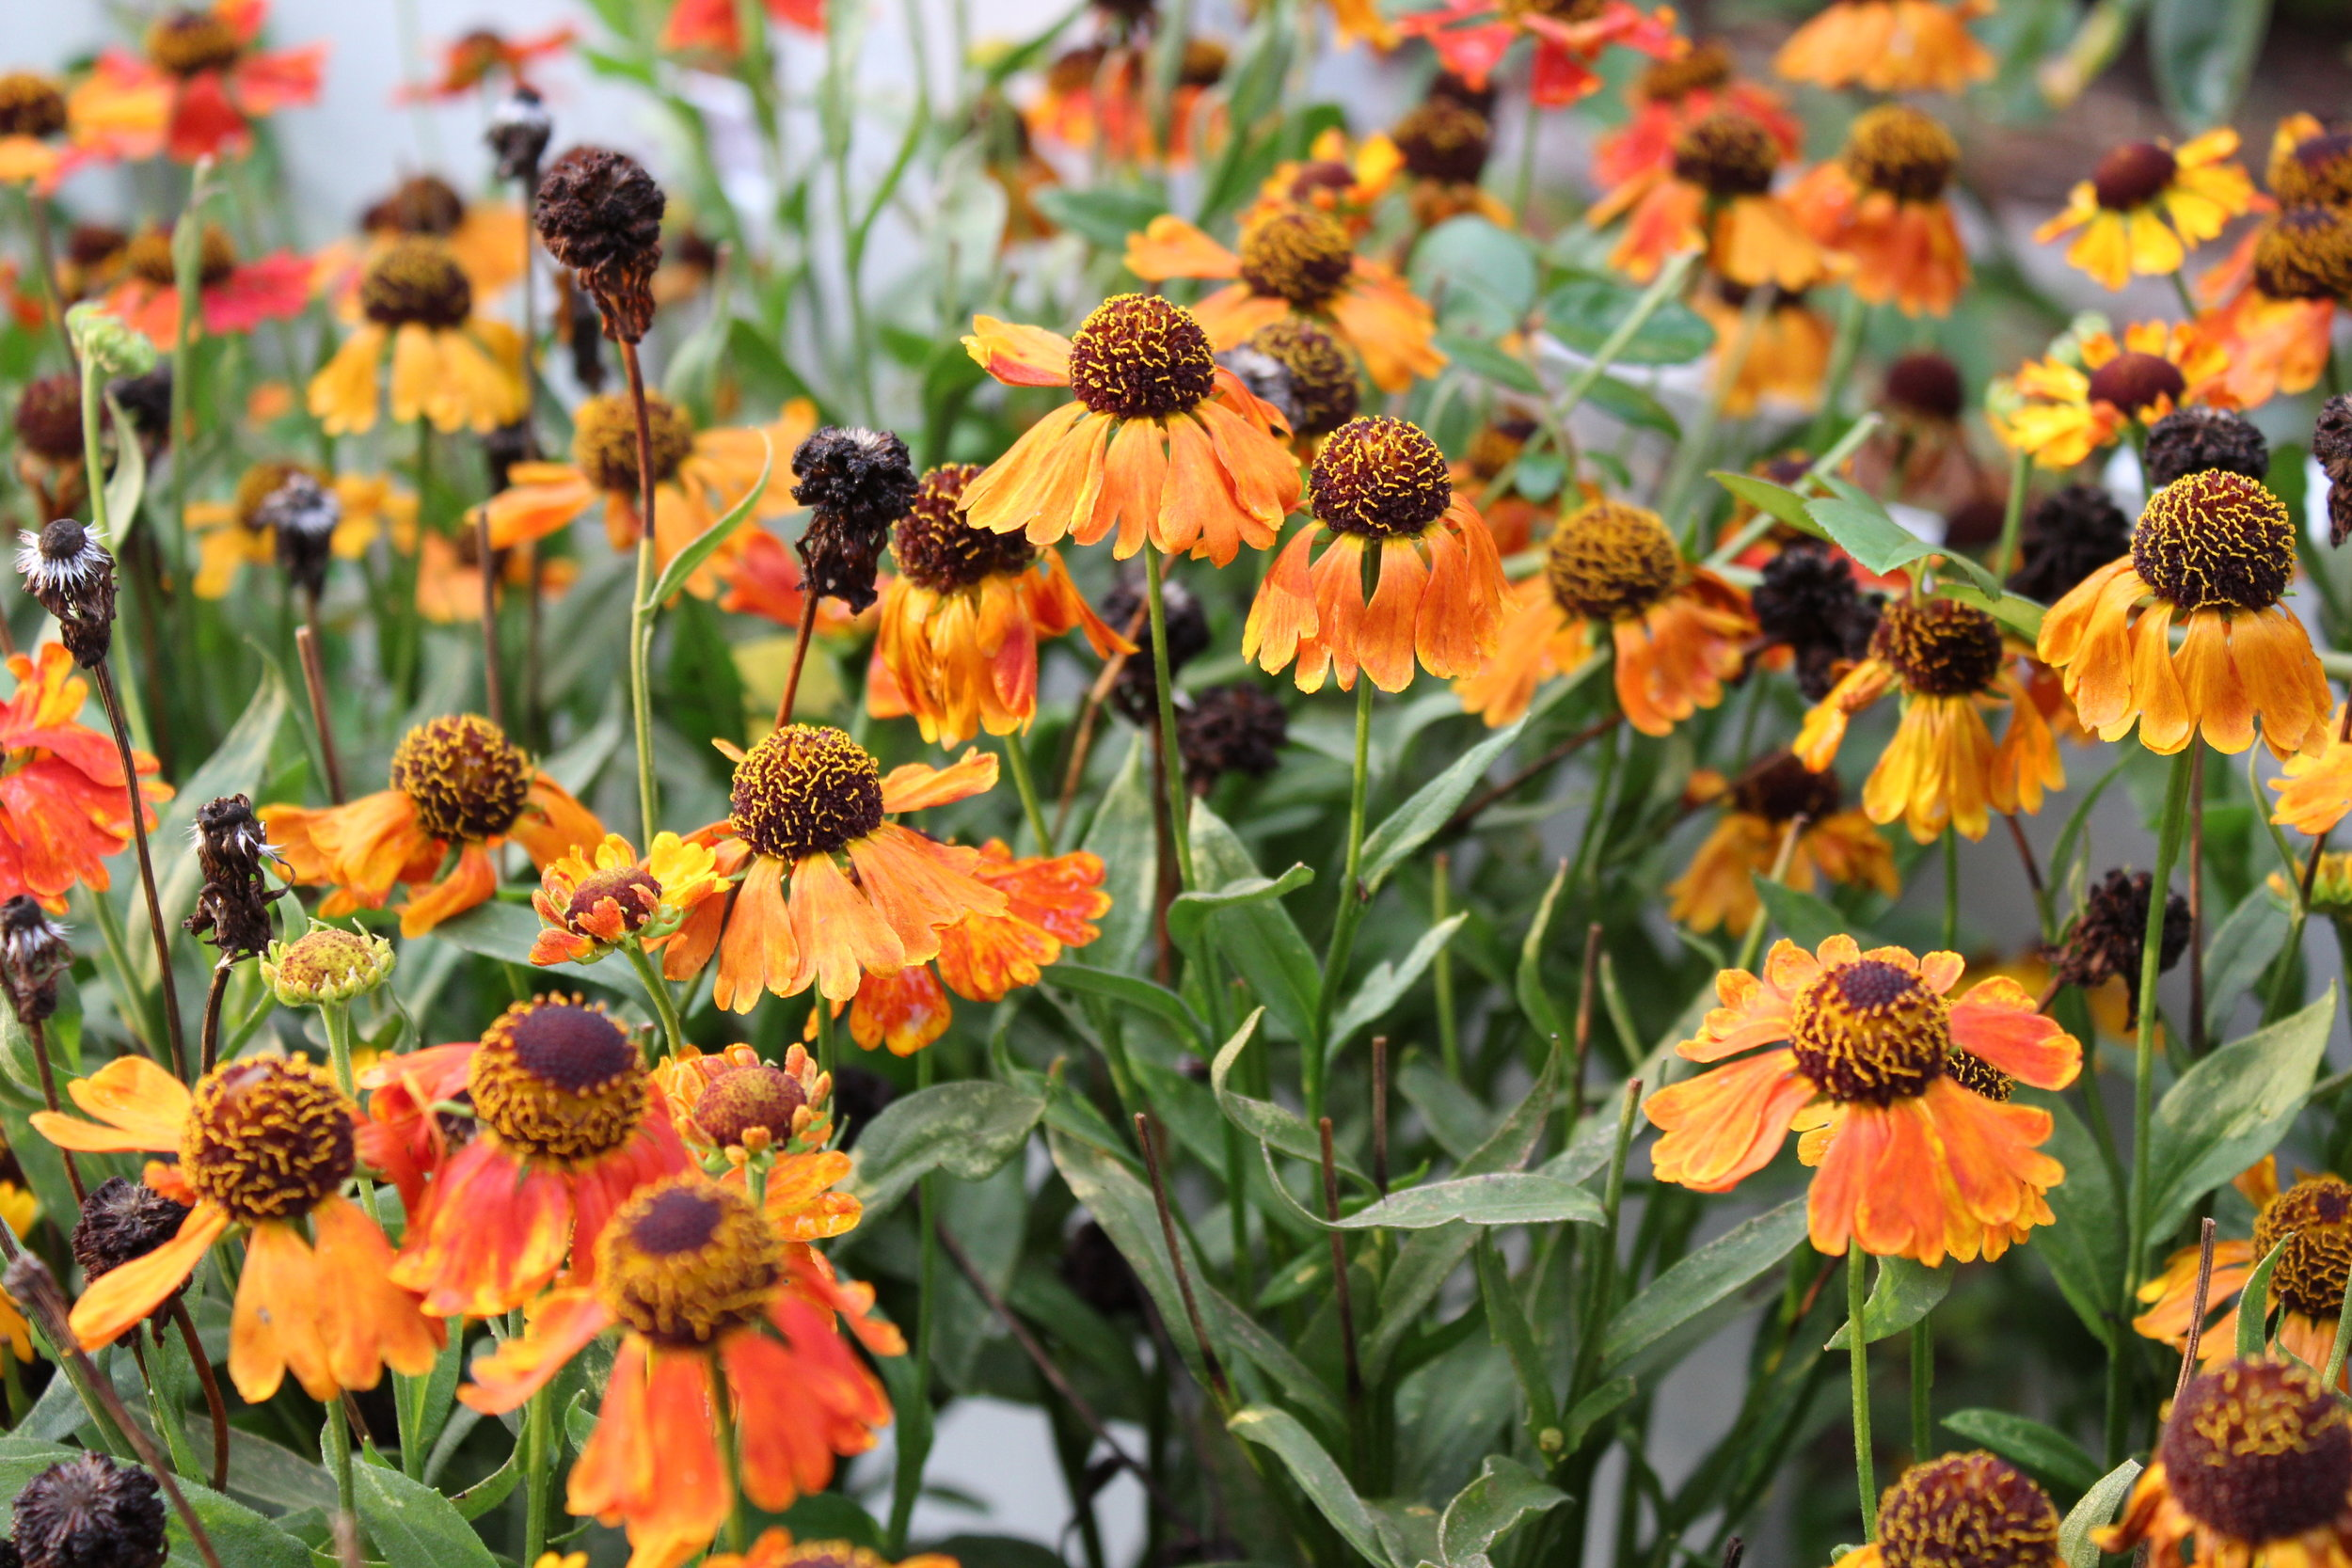 Helenium 'Mardi Gras' blooms mid-summer through fall. it non-stop blooms for 2-3 months. It is unbeatable for color and needs no deadheading to keep blooming.